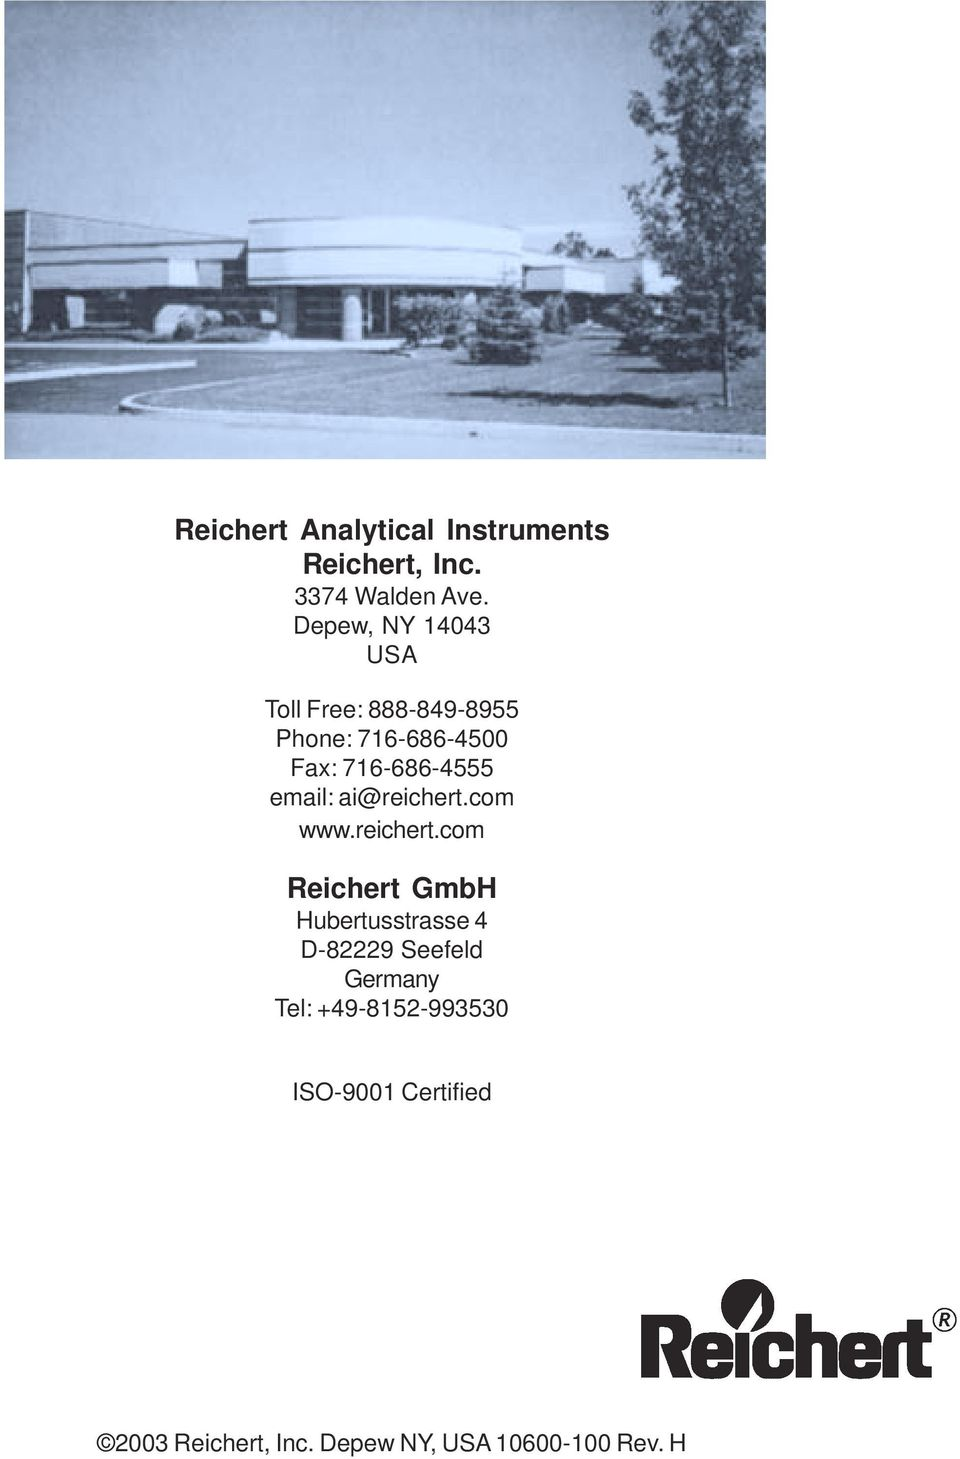 Reichert AR6 SERIES  Automatic Refractometer - PDF